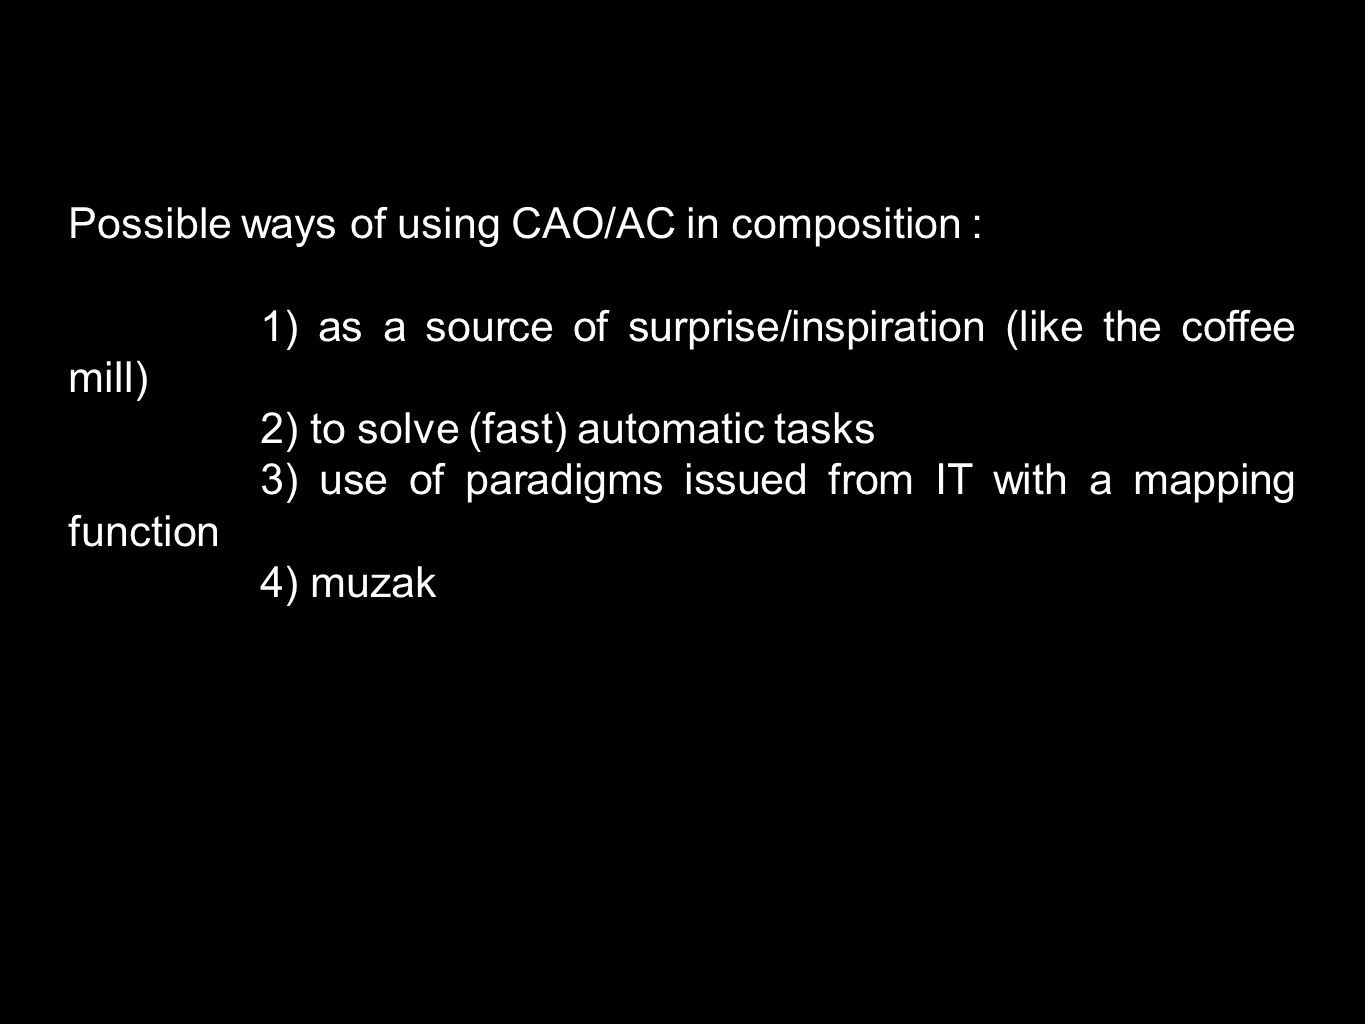 Possible ways of using CAO/AC in composition : 1) as a source of surprise/inspiration (like the coffee mill) 2) to solve (fast) automatic tasks 3) use of paradigms issued from IT with a mapping function 4) muzak